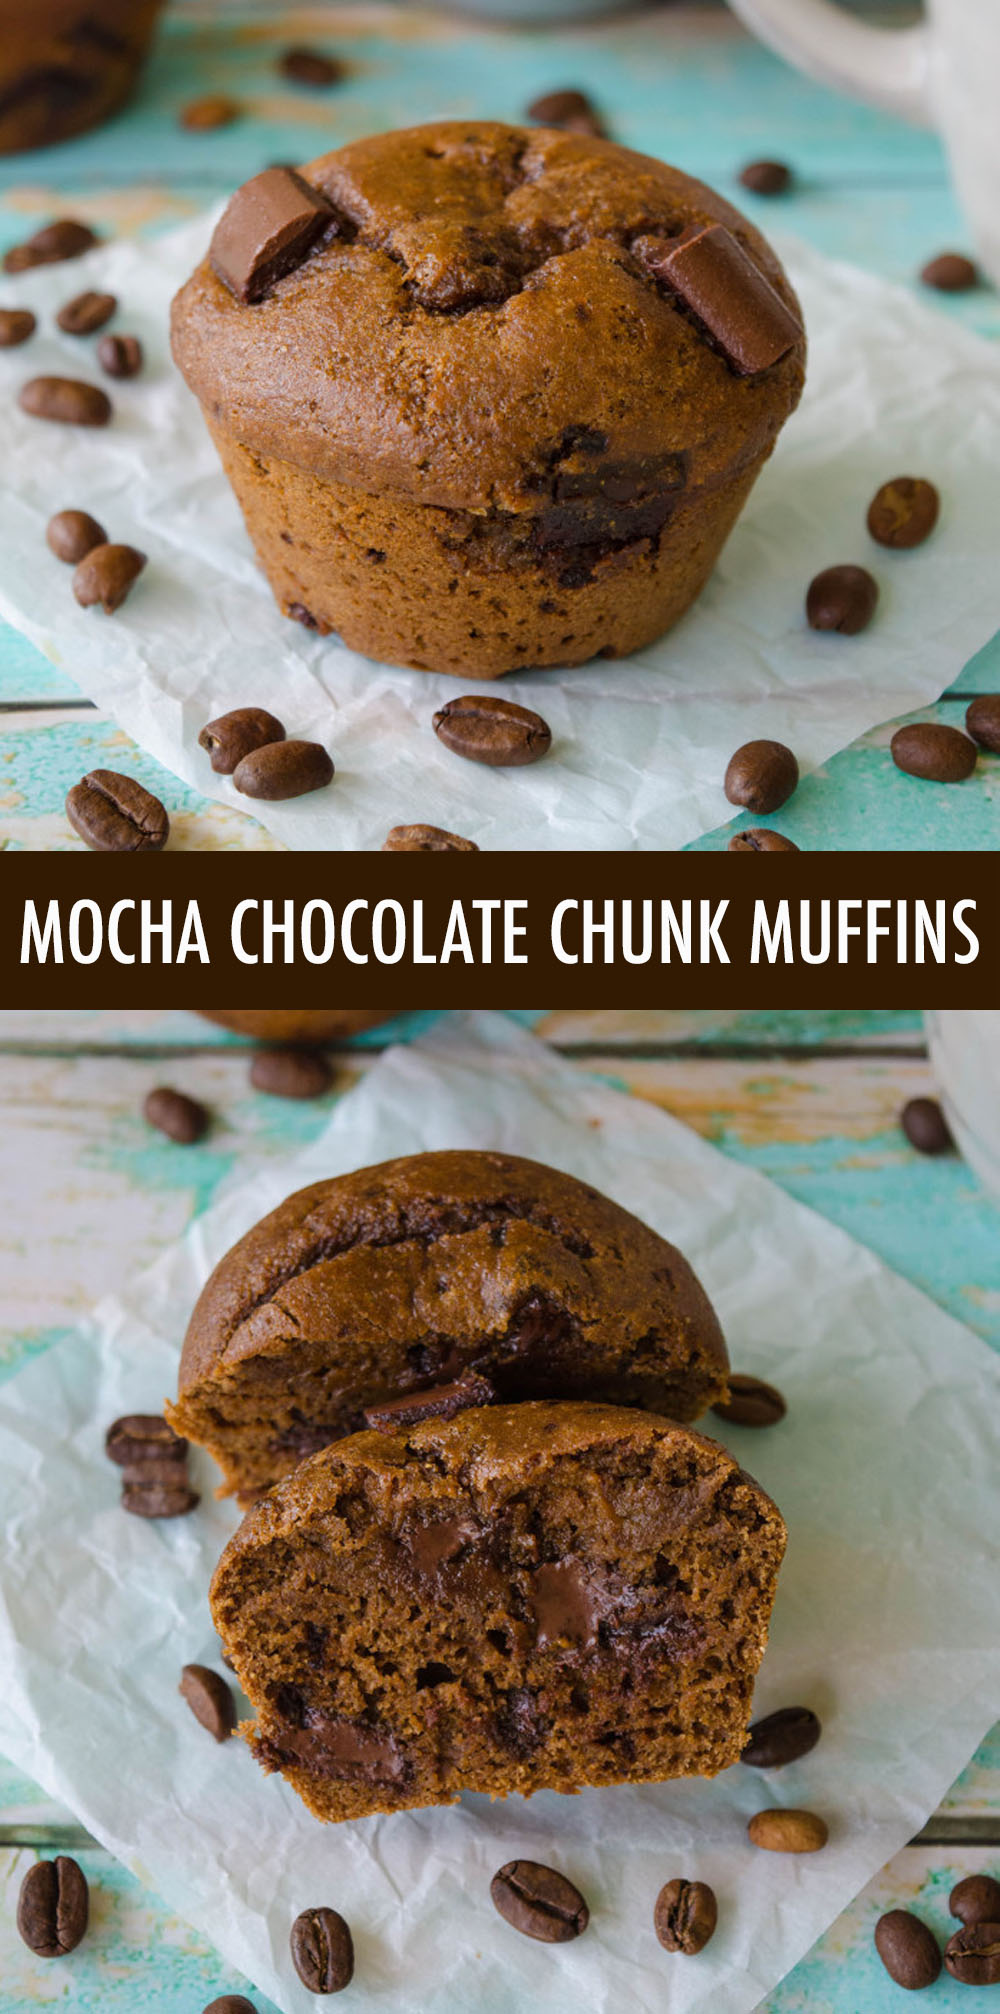 Moist and tender coffee flavored muffins filled with gooey chunks of chocolate. No oil, no butter, but so many mouthwatering flavors!